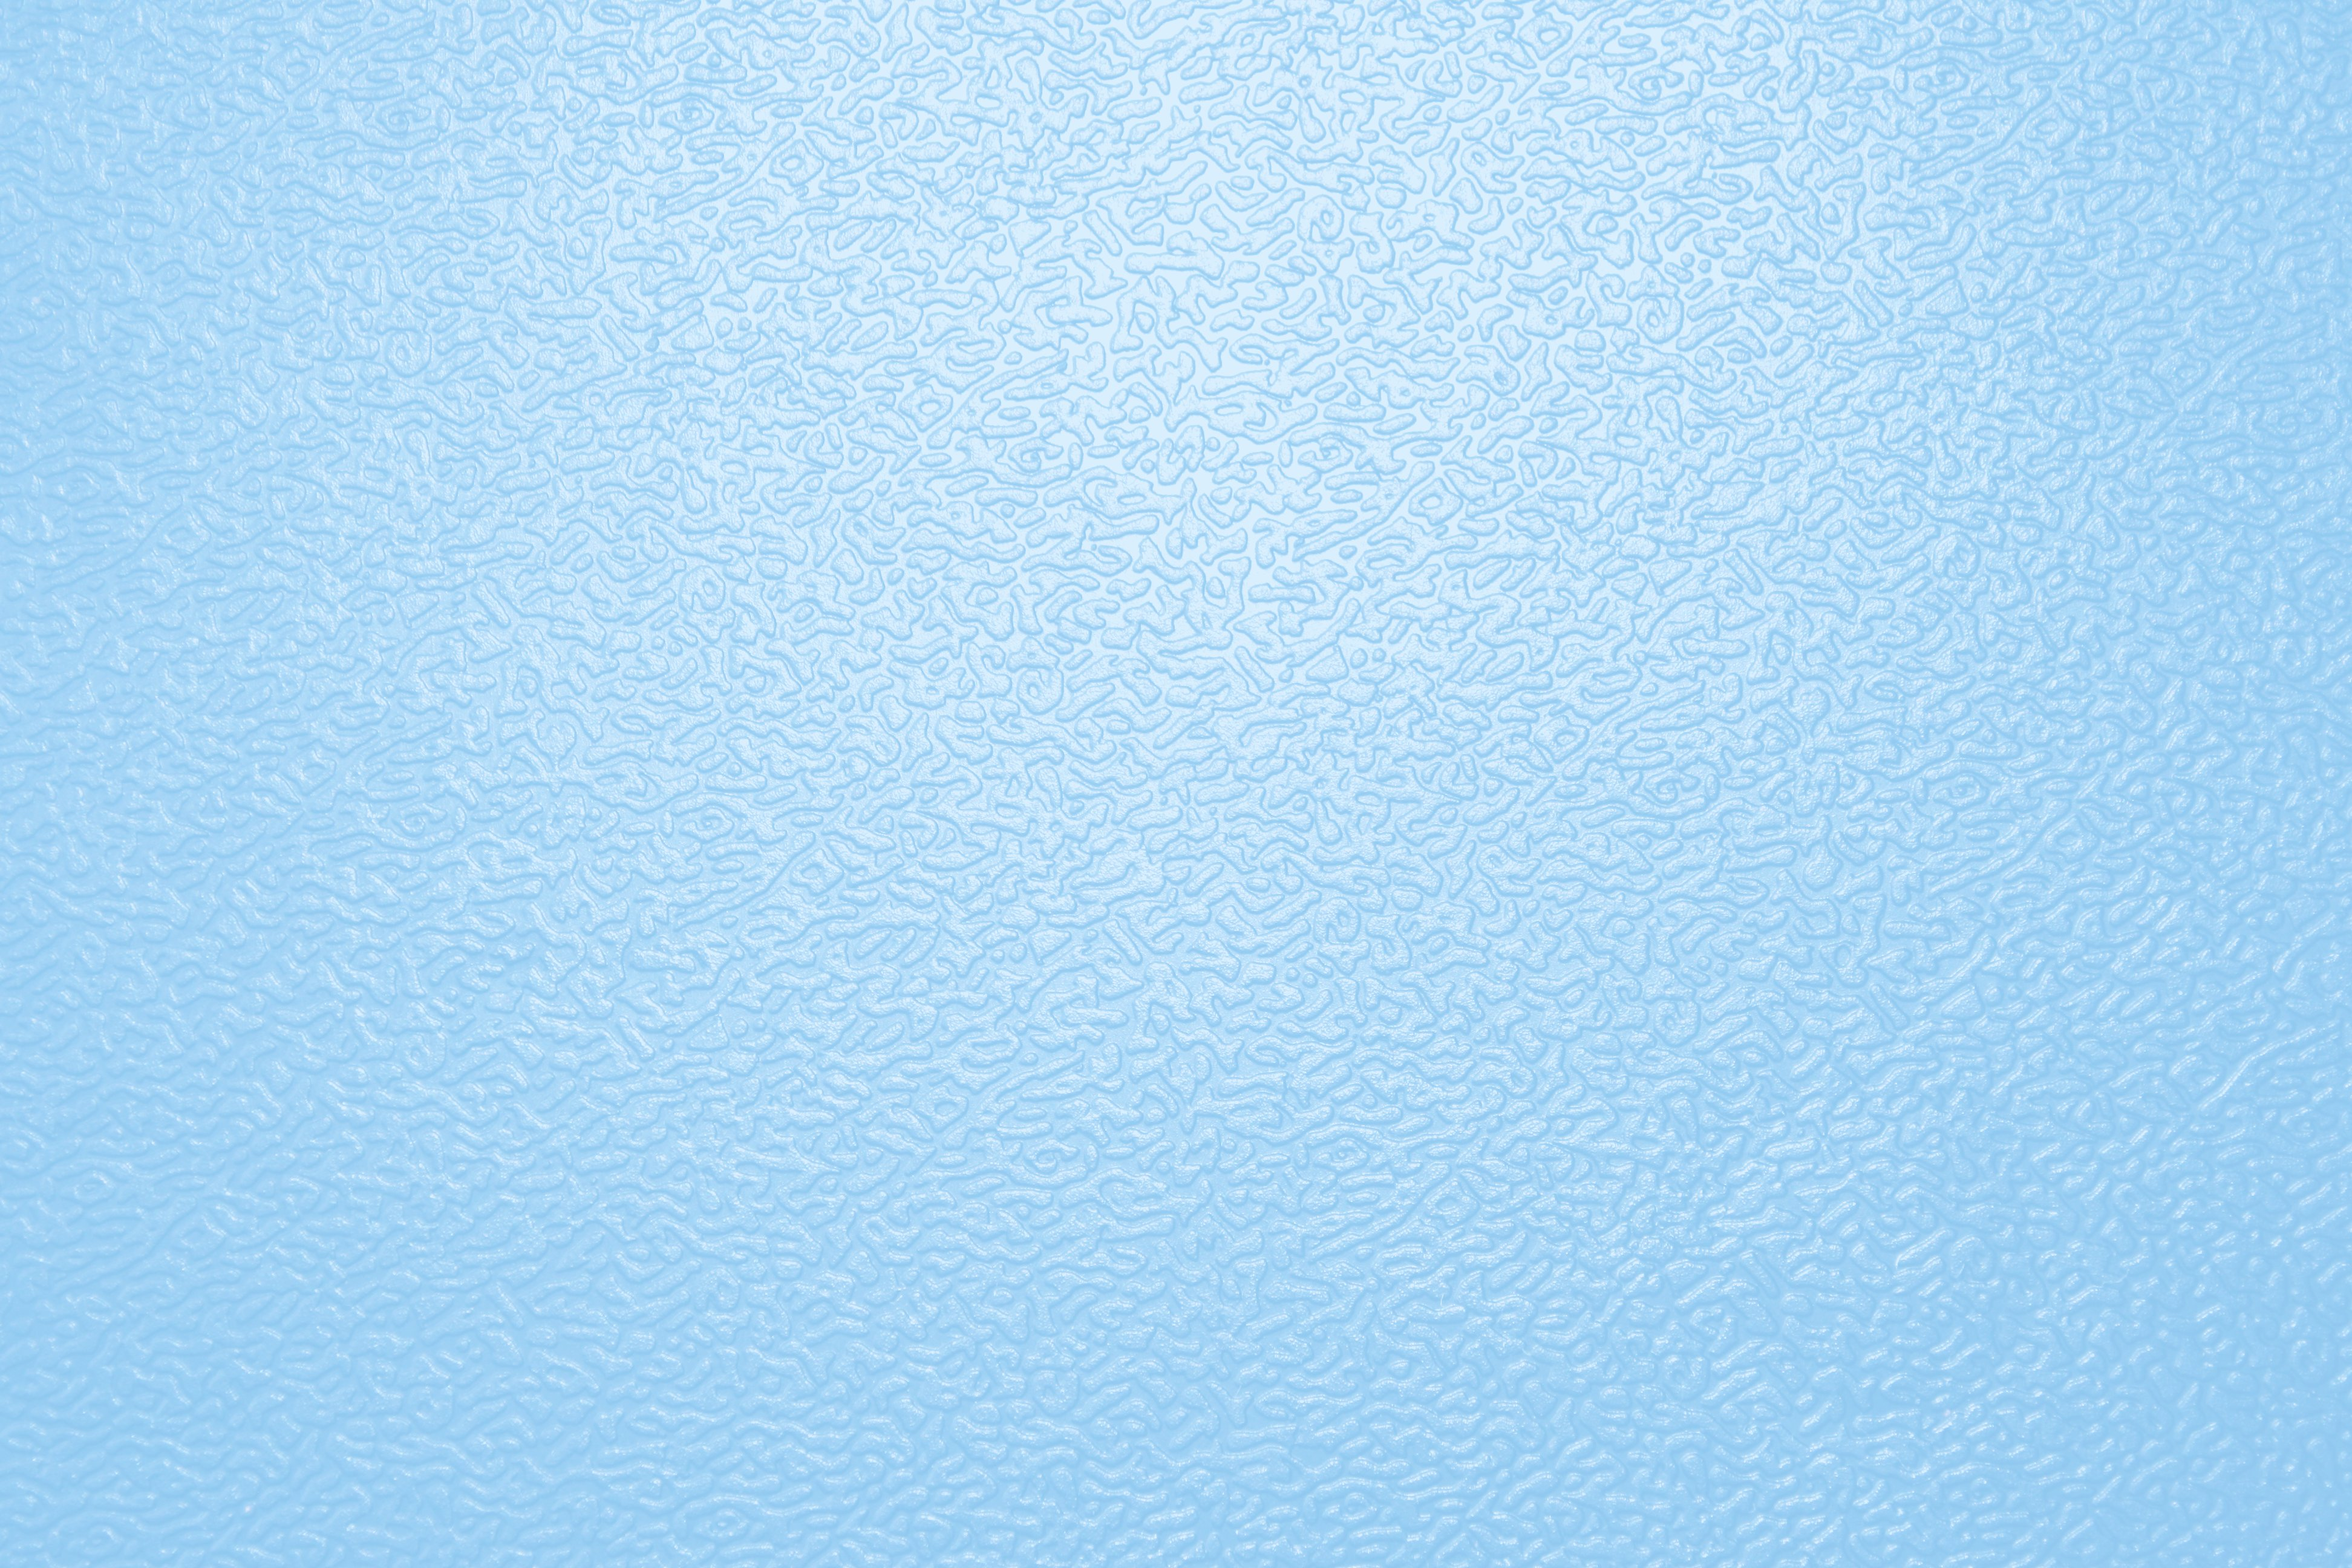 Textured Baby Blue Plastic Close Up Picture Photograph Photos 3888x2592